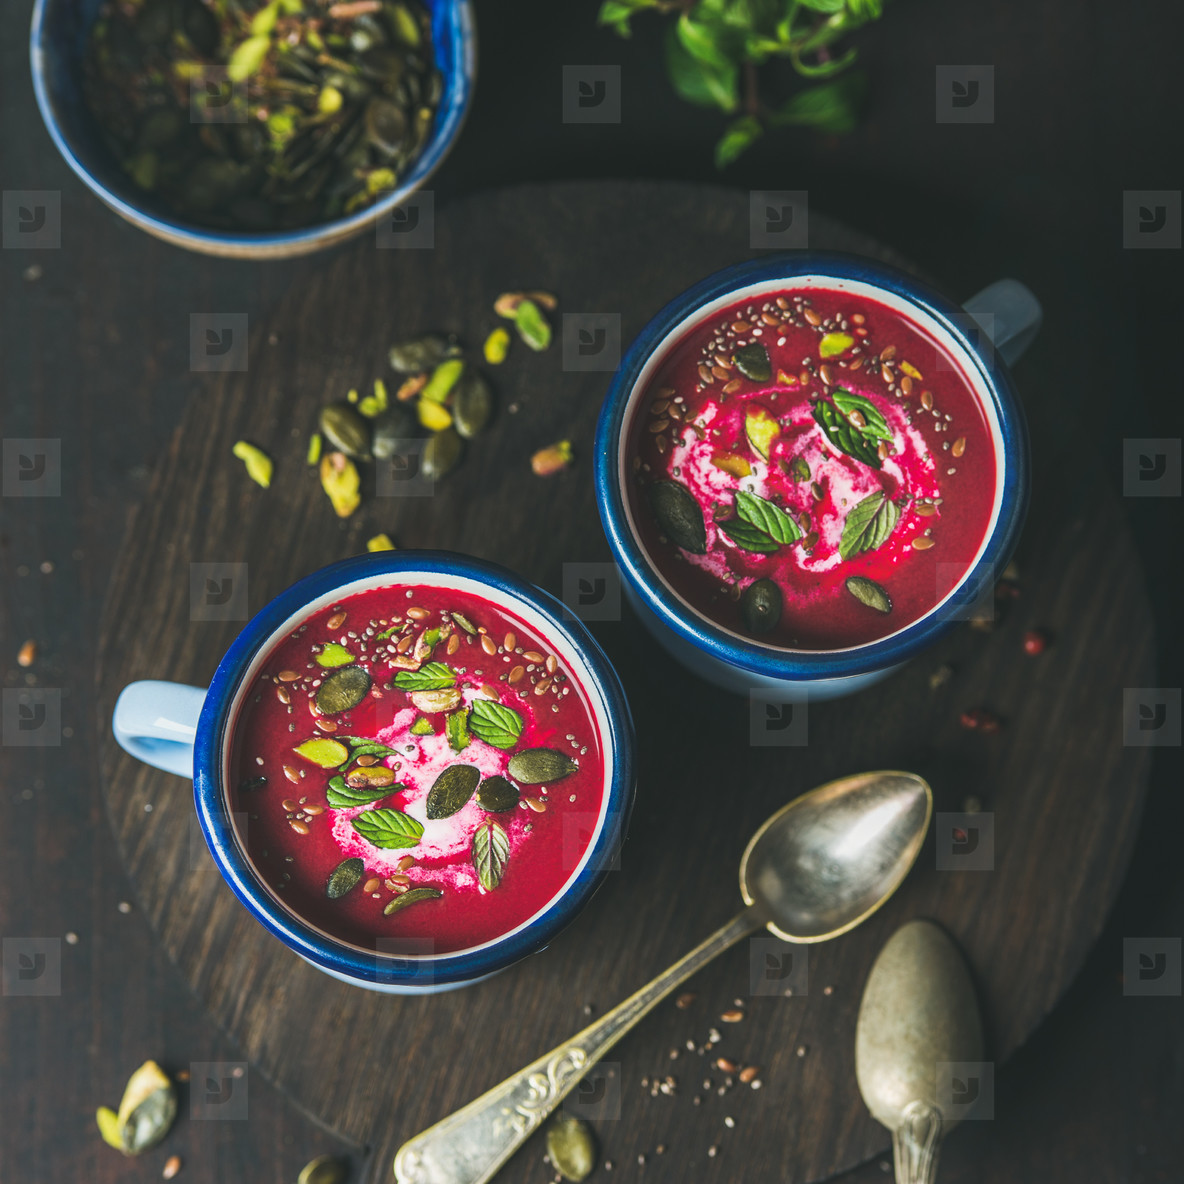 Beetroot soup with mint  pistachio  chia  flax  pumpkin seeds